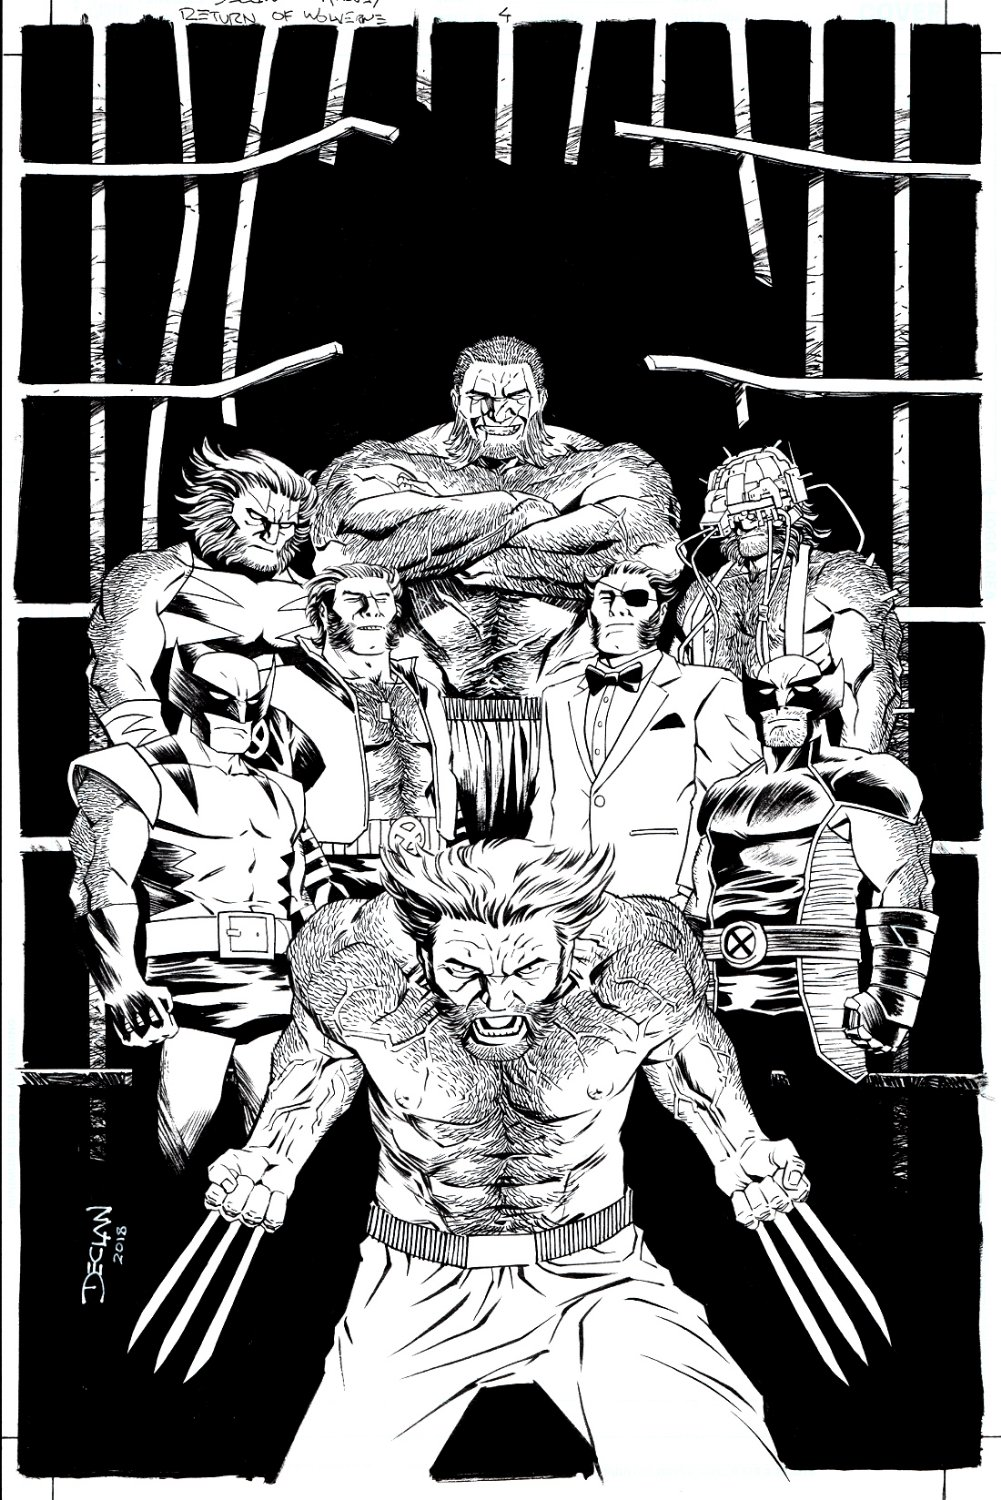 Return of Wolverine #4 Cover (8 DIFFERENT WOLVERINES FROM HIS FULL HISTORY, WOW!) 2018